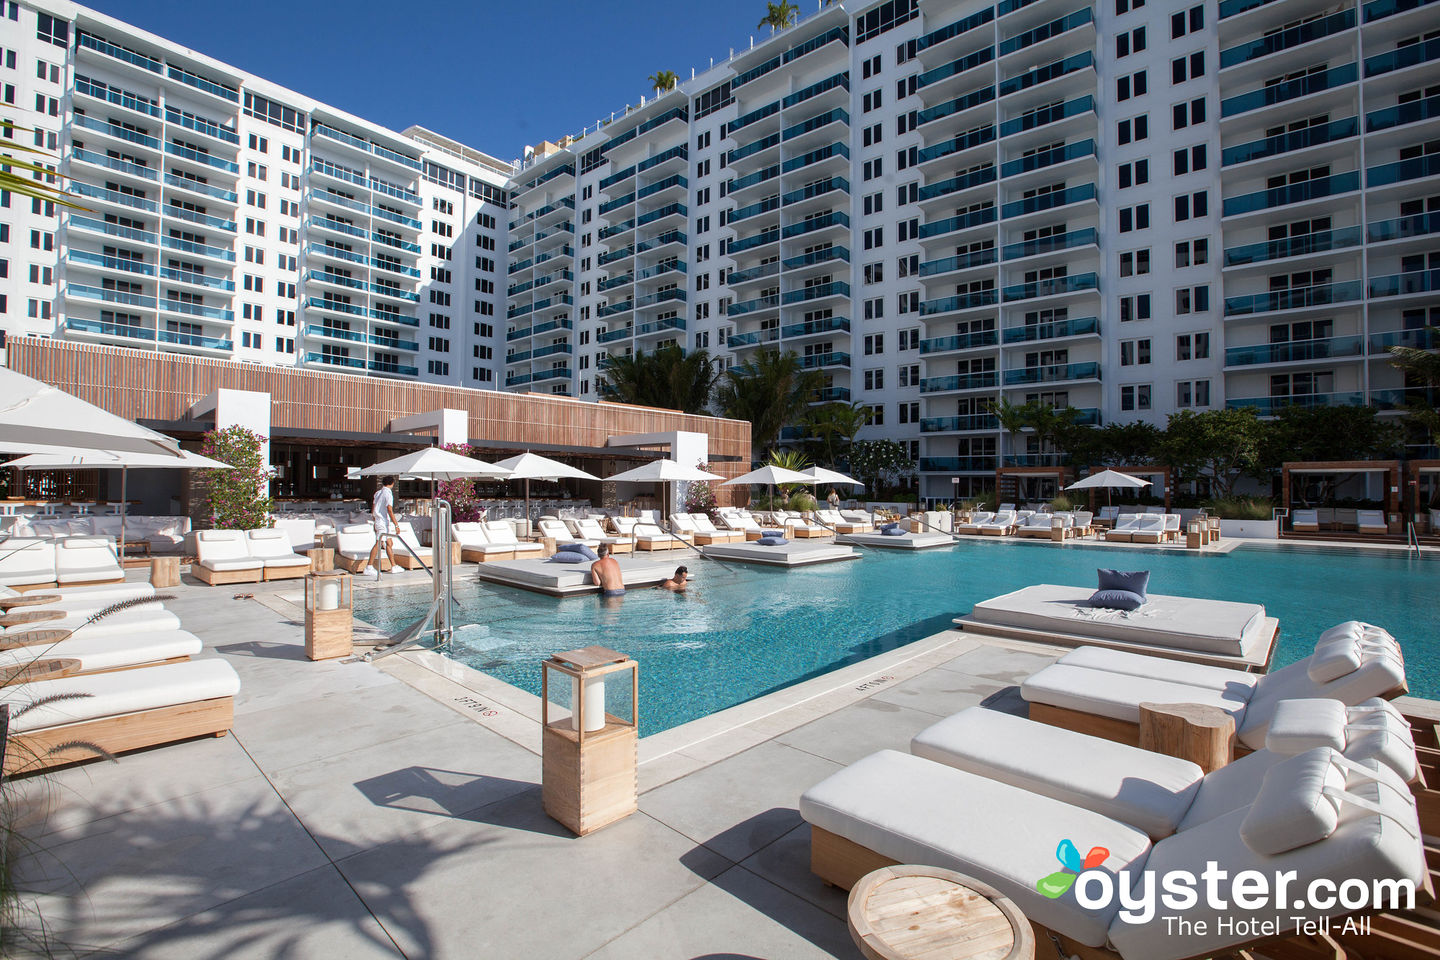 1 Hotel South Beach Review What To Really Expect If You Stay